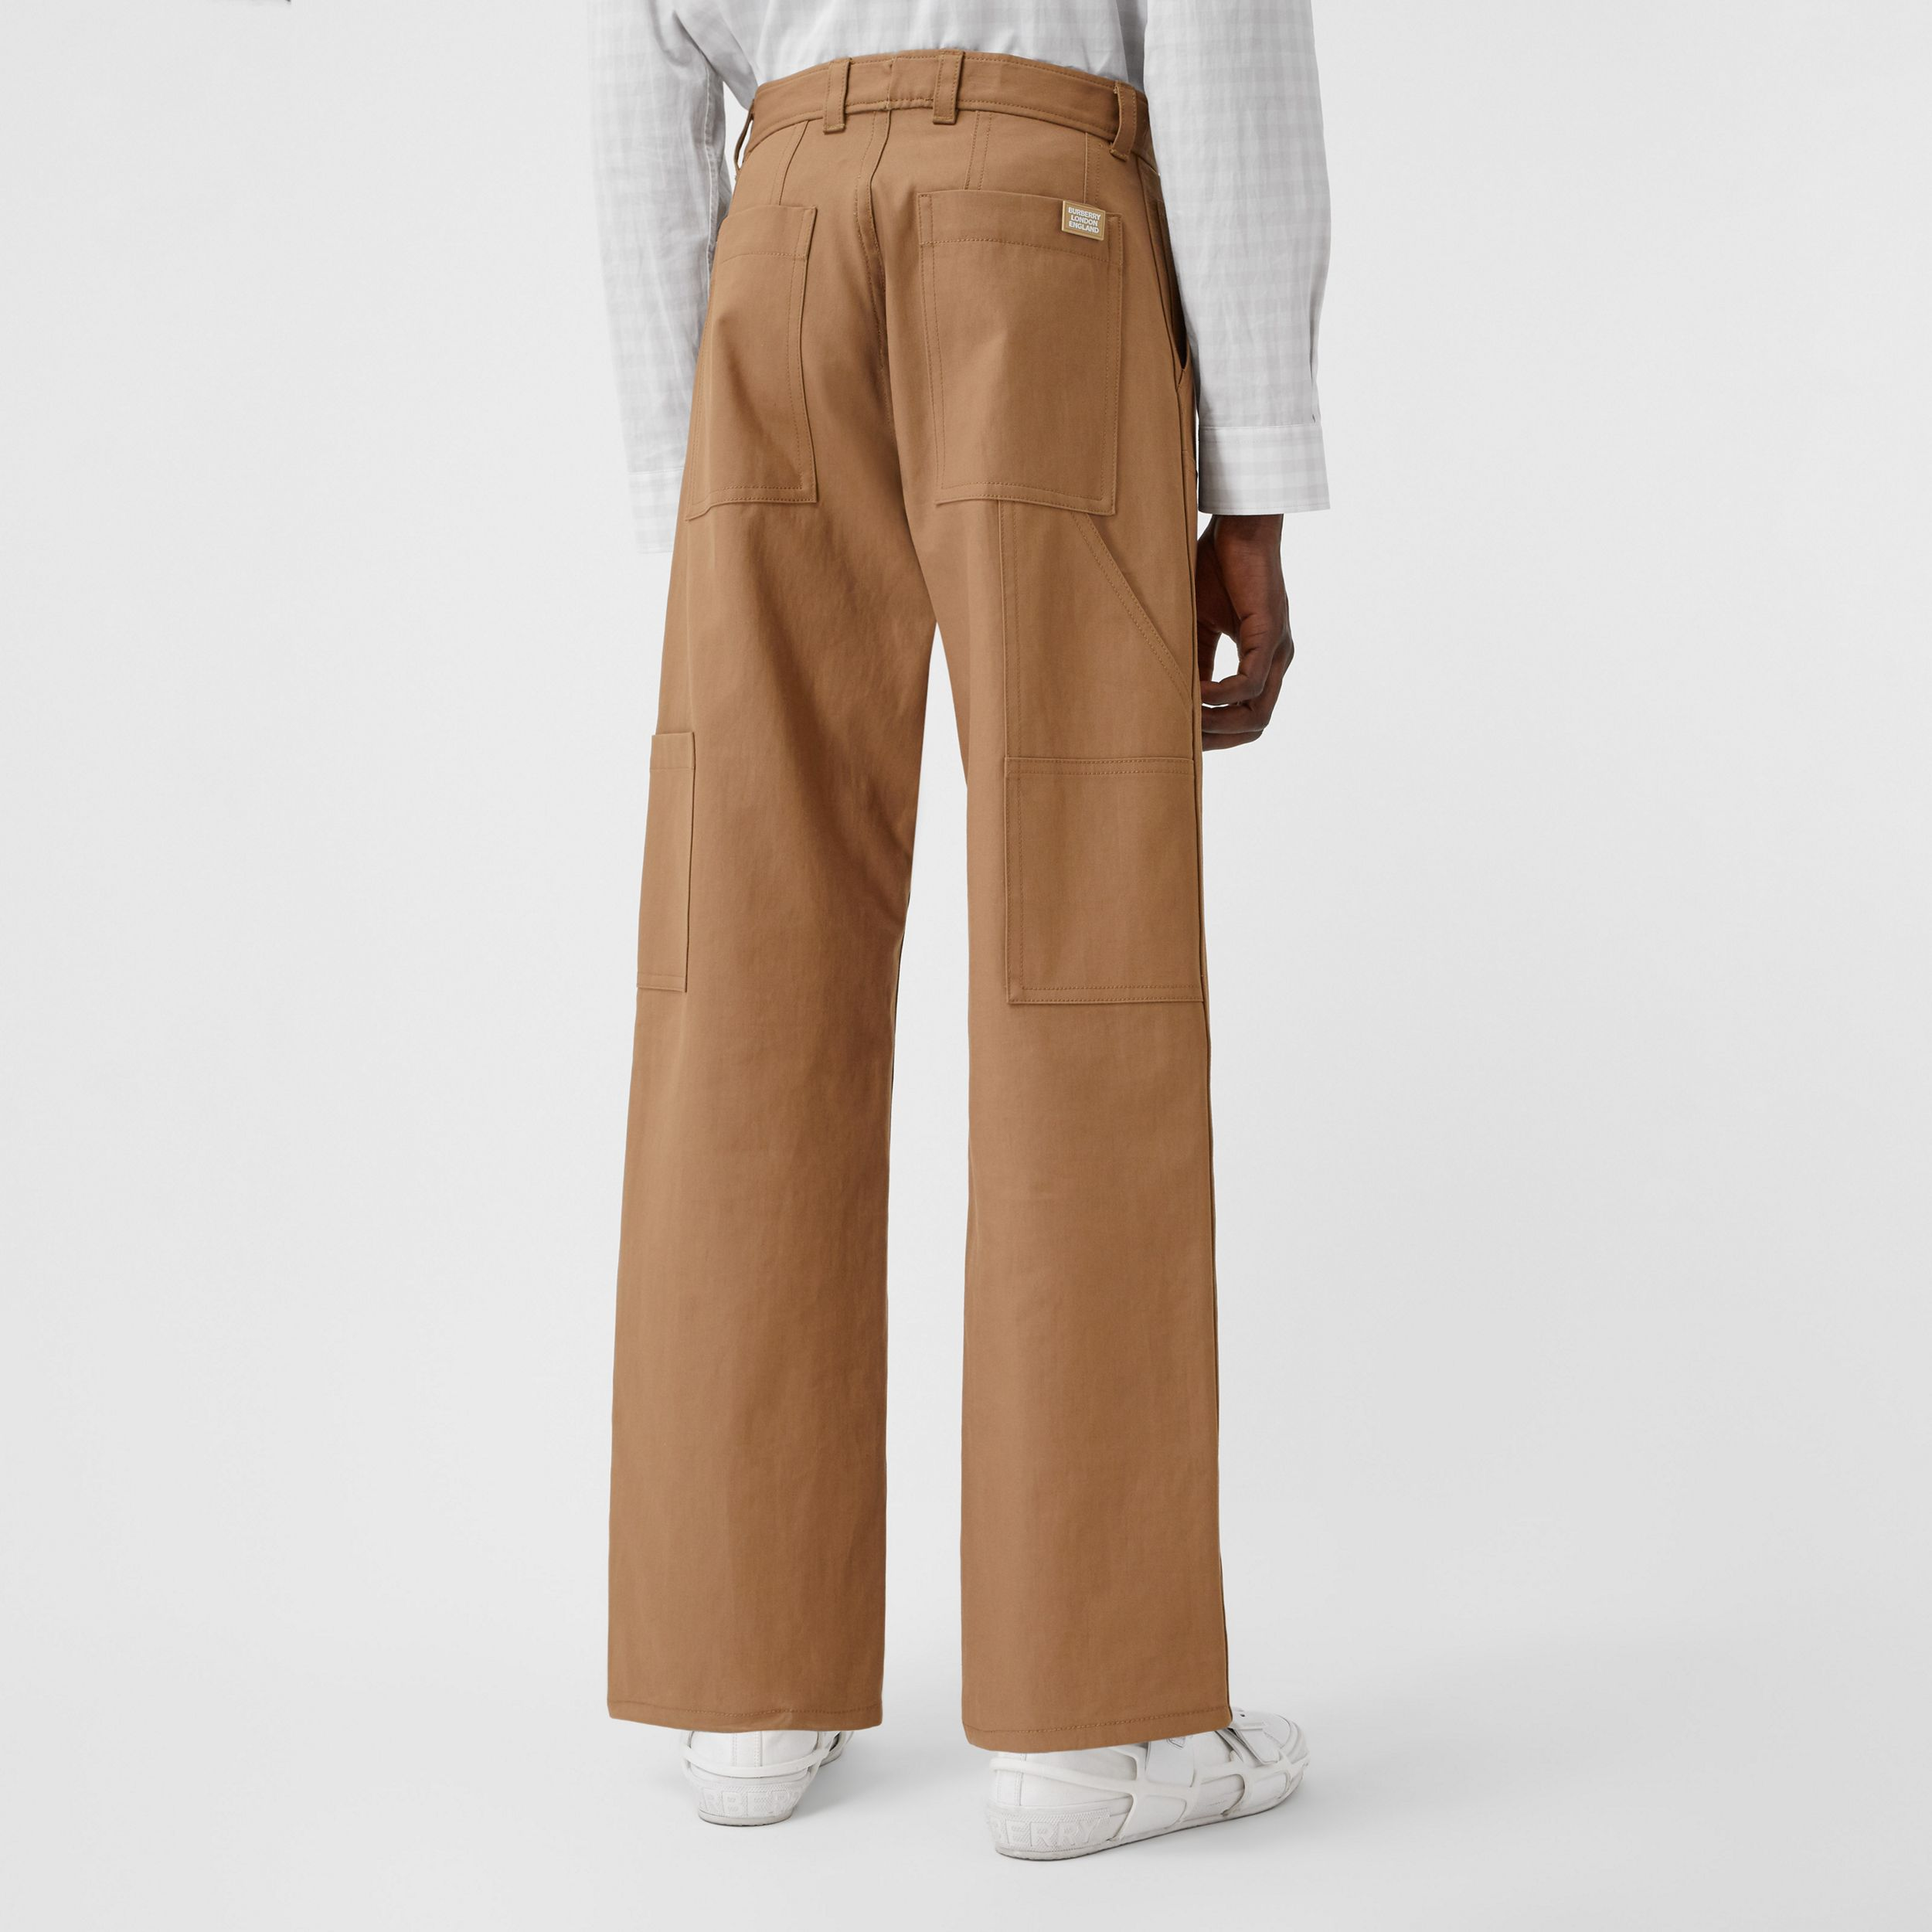 Cotton Twill Tailored Trousers in Warm Walnut - Men | Burberry - 3